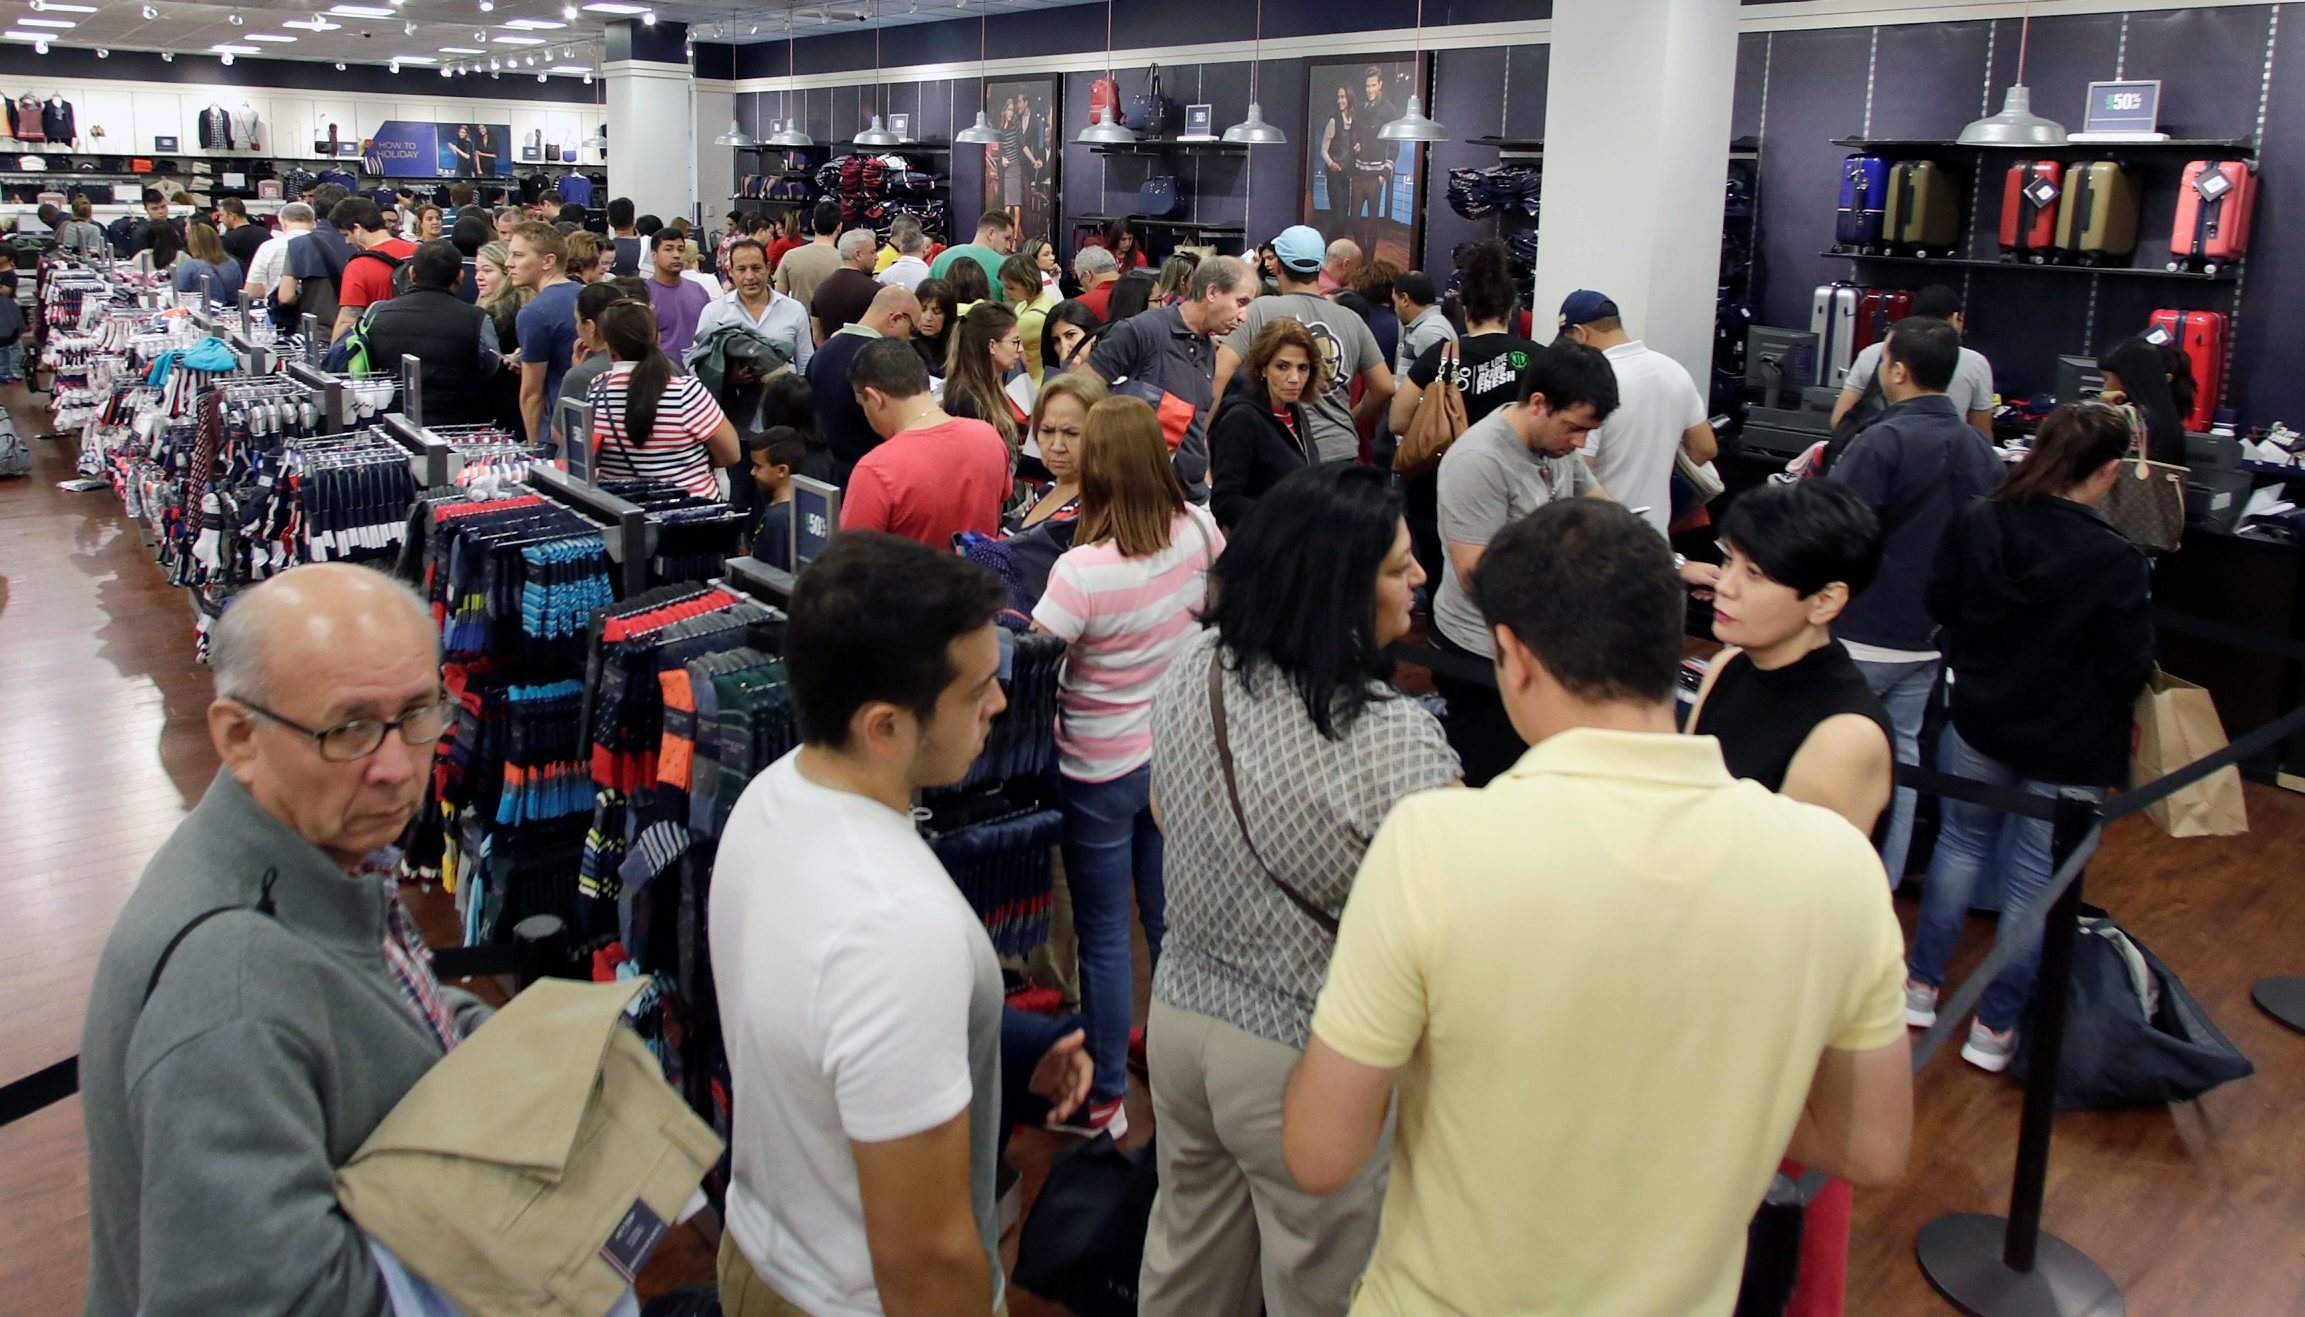 c5984155 Shoppers stand in line to pay at a Tommy Hilfiger store on Black Friday  last year in Miami. Fewer customers say they will shop on Black Friday  compared with ...